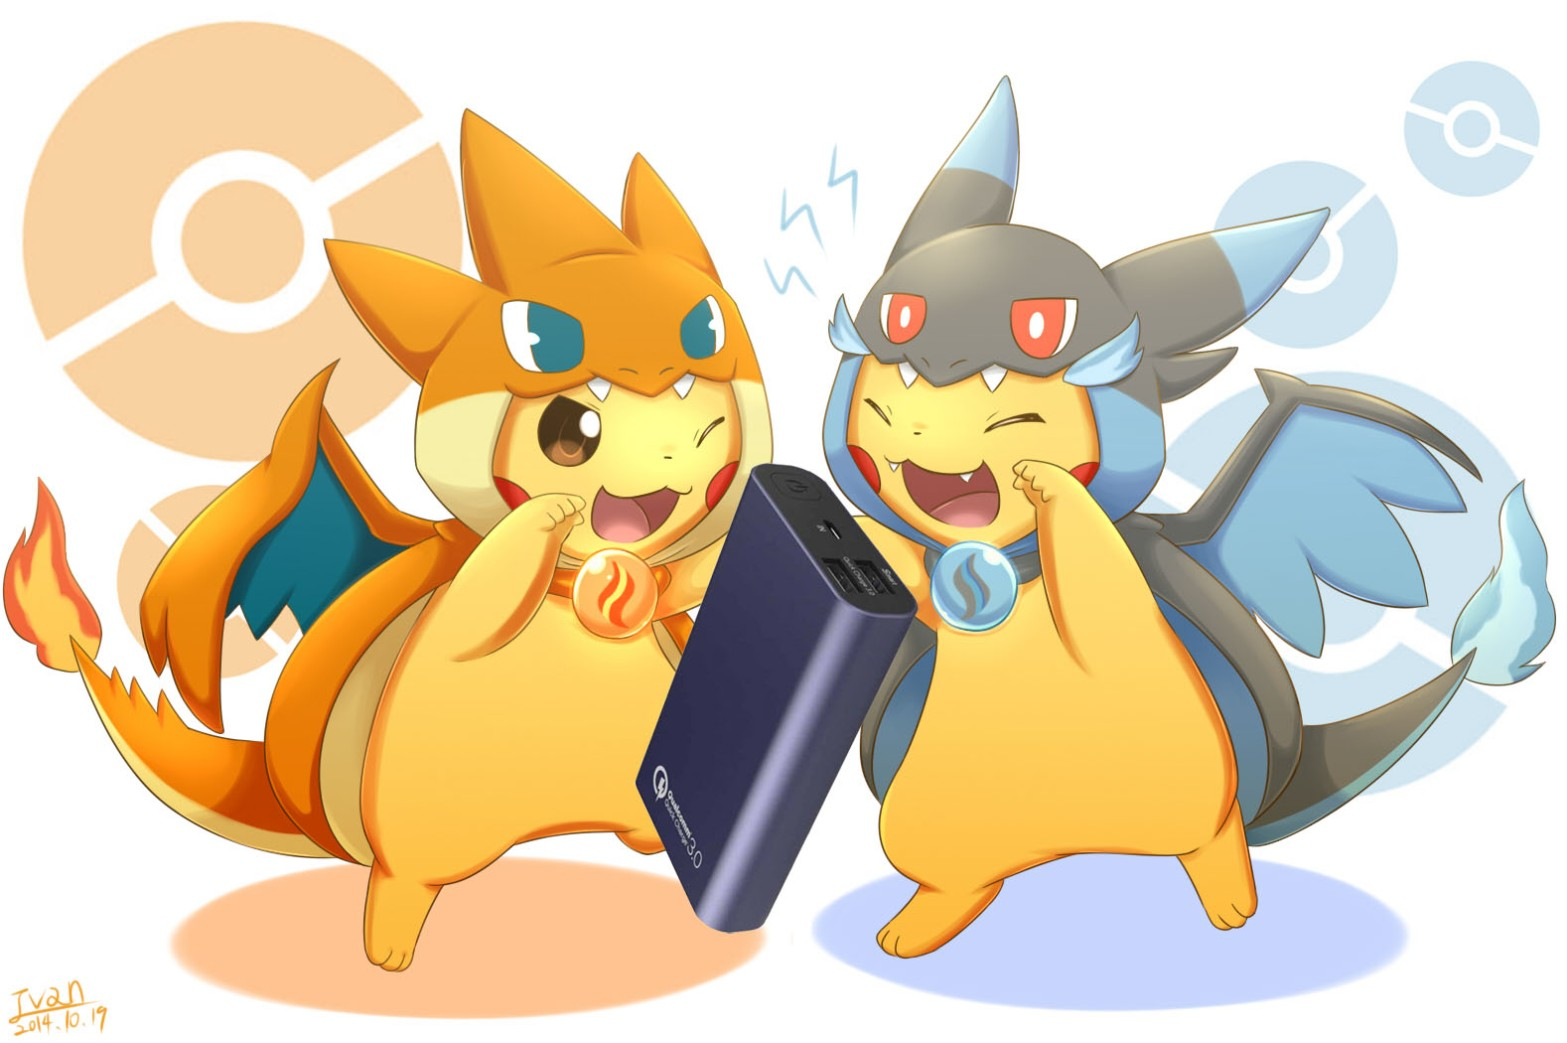 Power Your Pokémon Go Life: EasyAcc Quick Charge 3.0 Power Bank Giveaway!